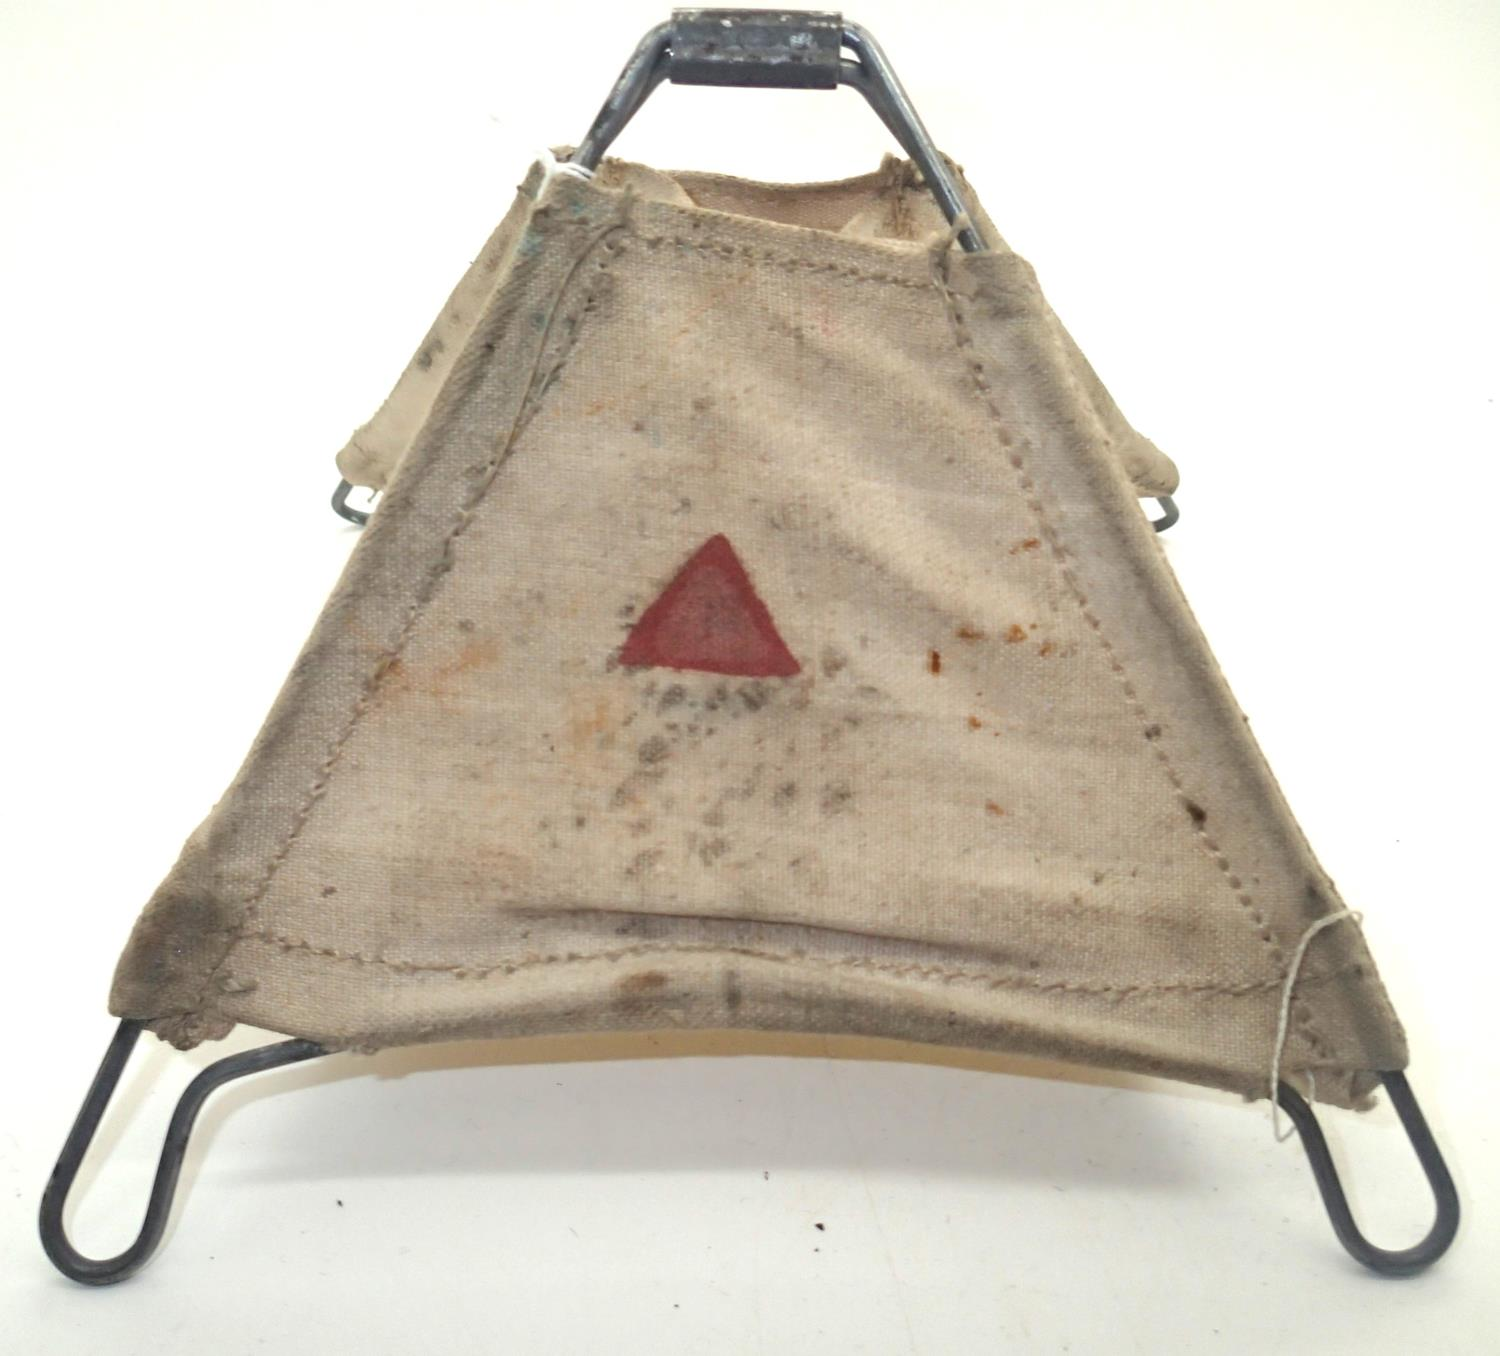 British WWII canvas folding mine marker. P&P Group 1 (£14+VAT for the first lot and £1+VAT for